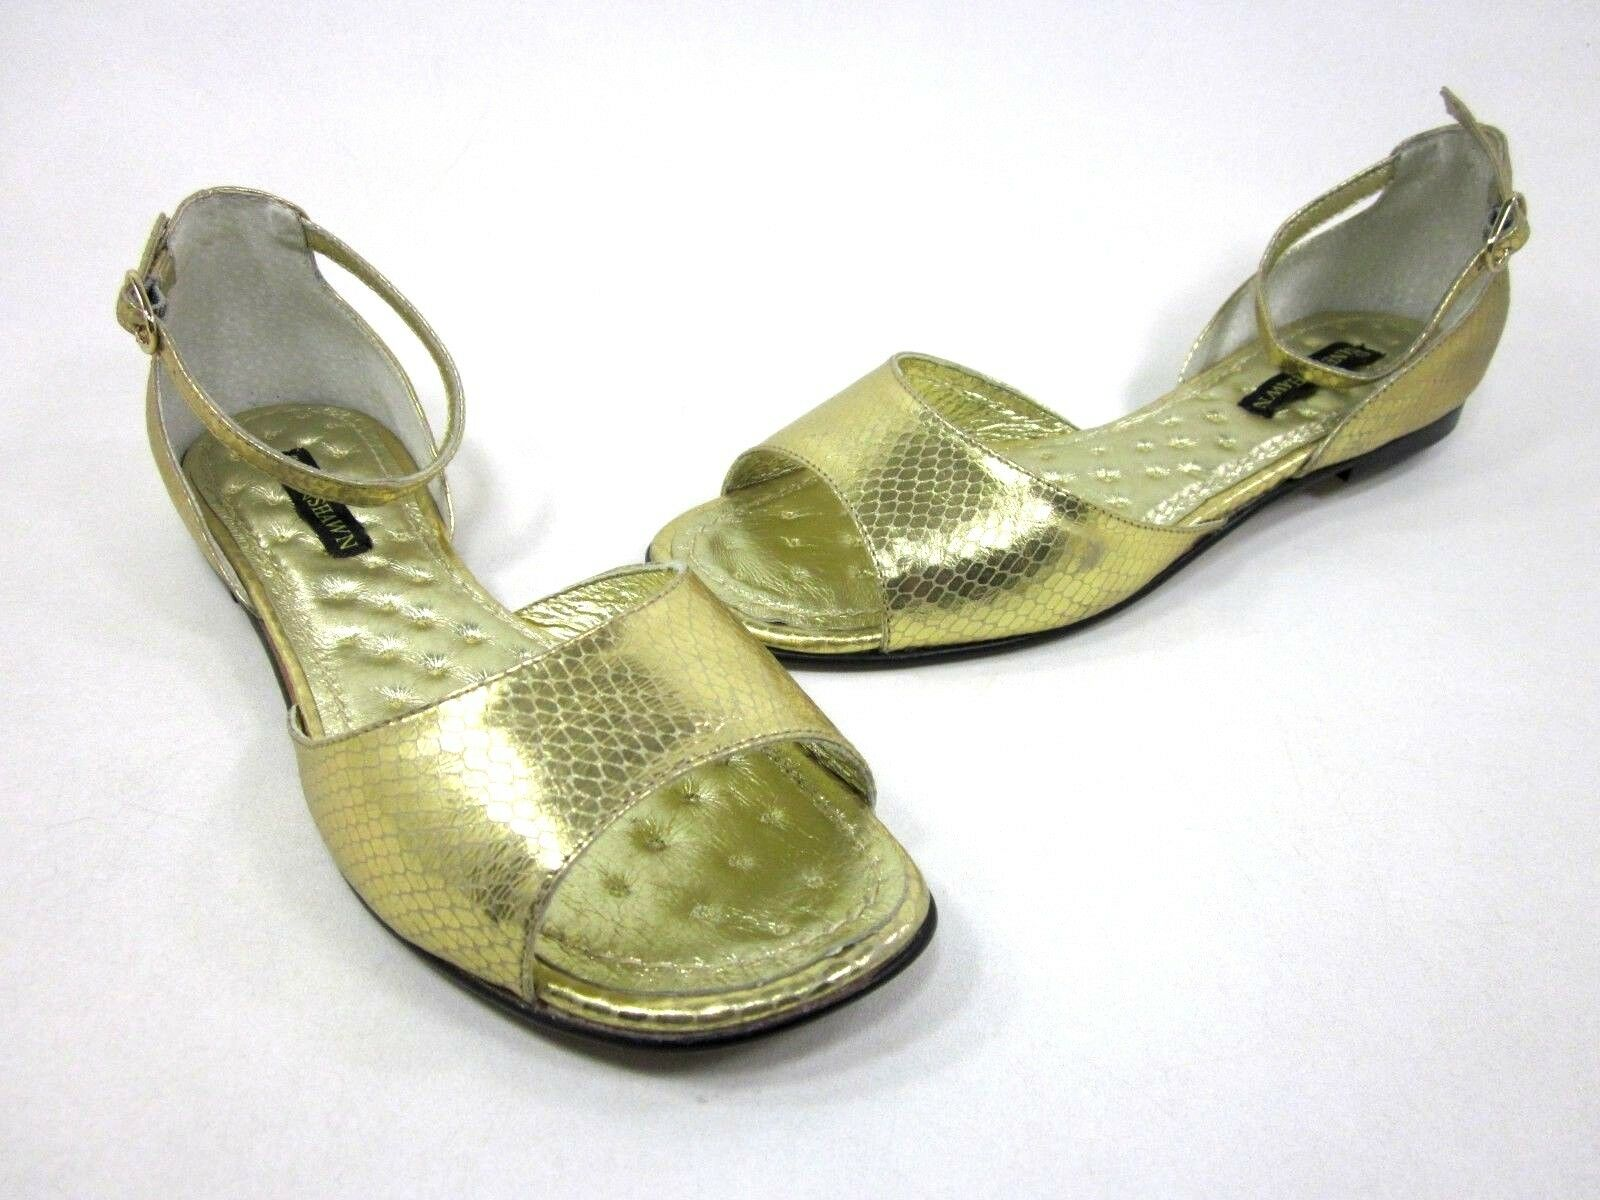 SHANE & SHAWN WOMEN'S PICKENS ANKLE-STRAP SANDAL, gold US 7, MEDIUM, NEW W O BOX